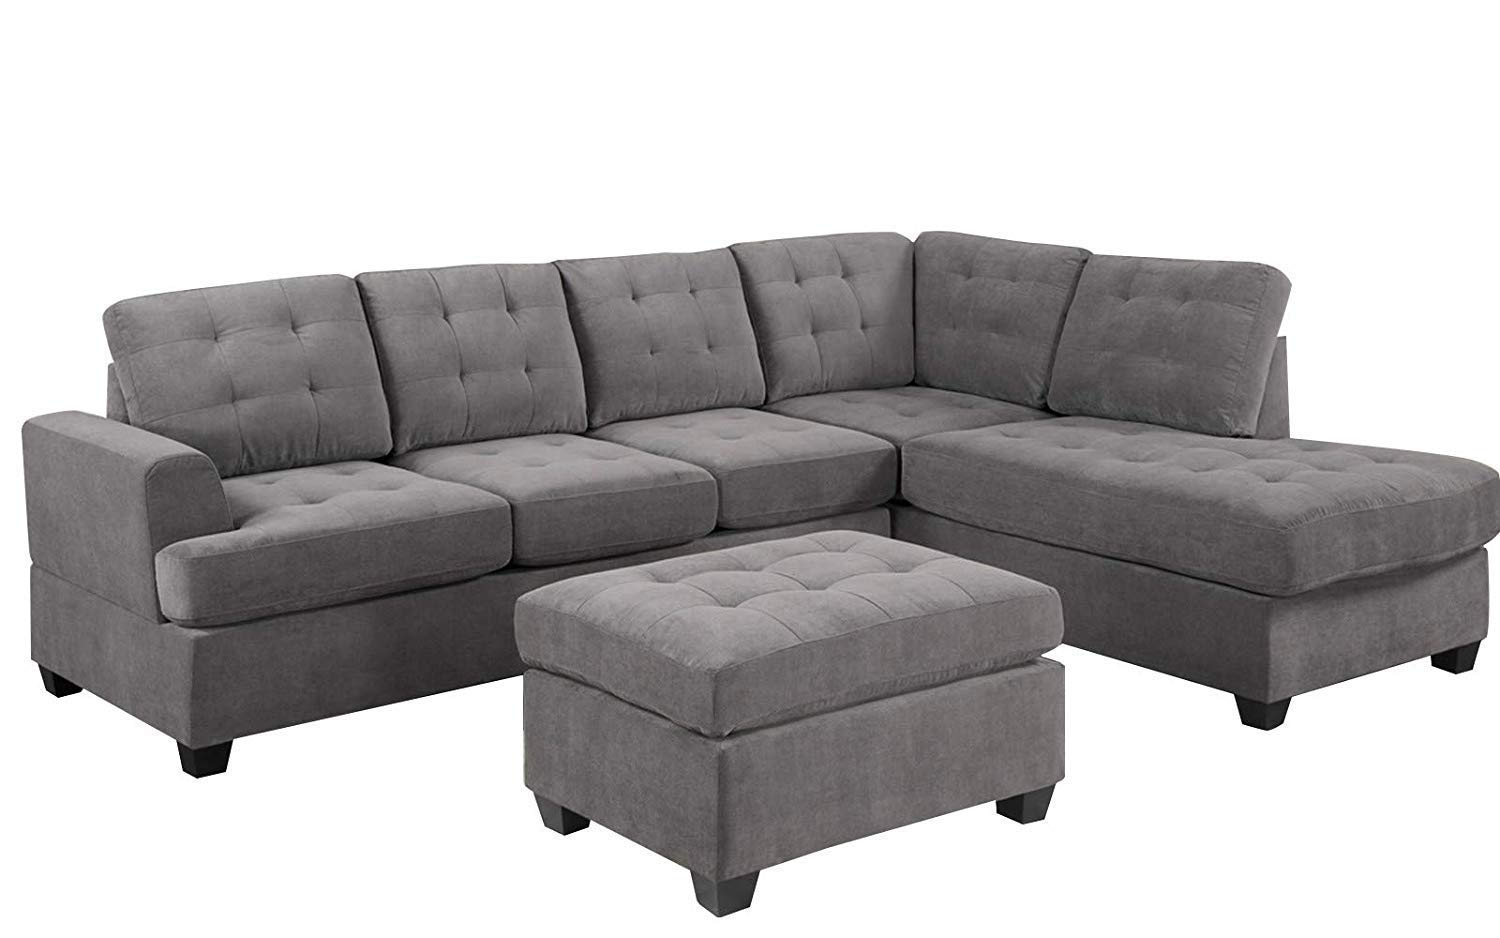 MOOSENG, 3-Piece Sectional Set with Chaise Lounge and Ottoman Mid Century Modern Living Room Furniture Sofas, Cool Gray by MOOSENG